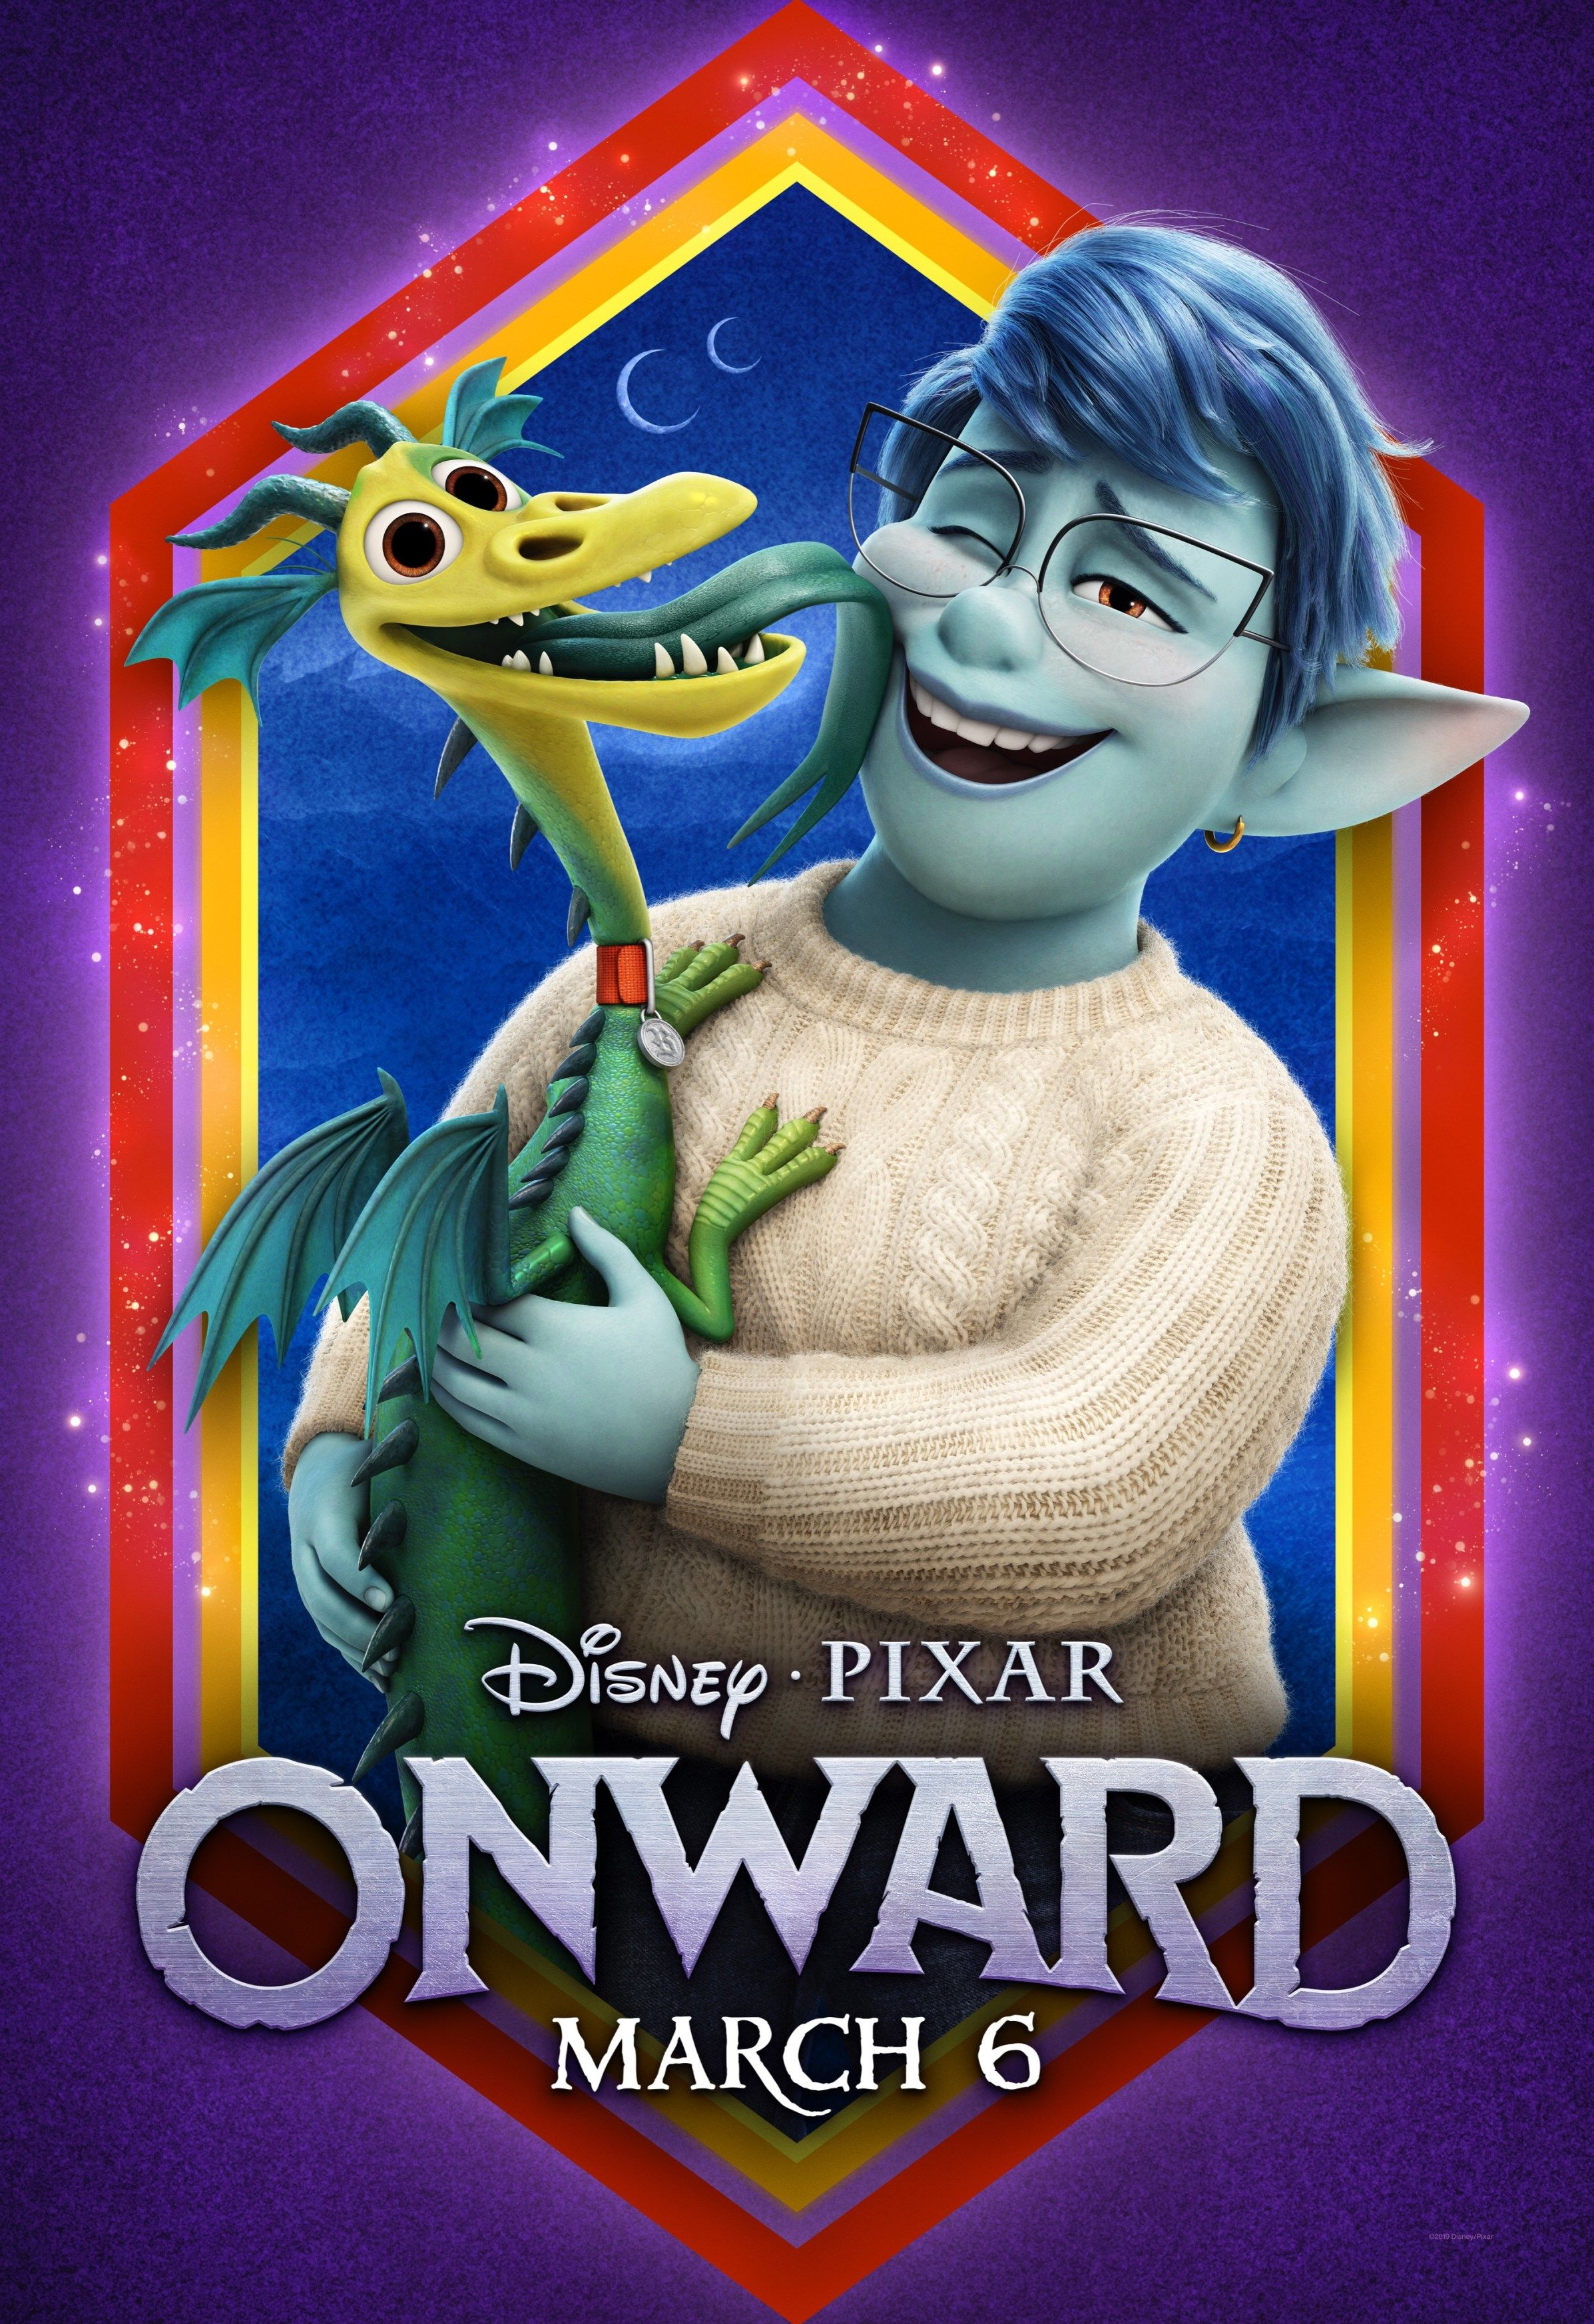 The New Onward Character Posters Are Incredibly Cute, Look